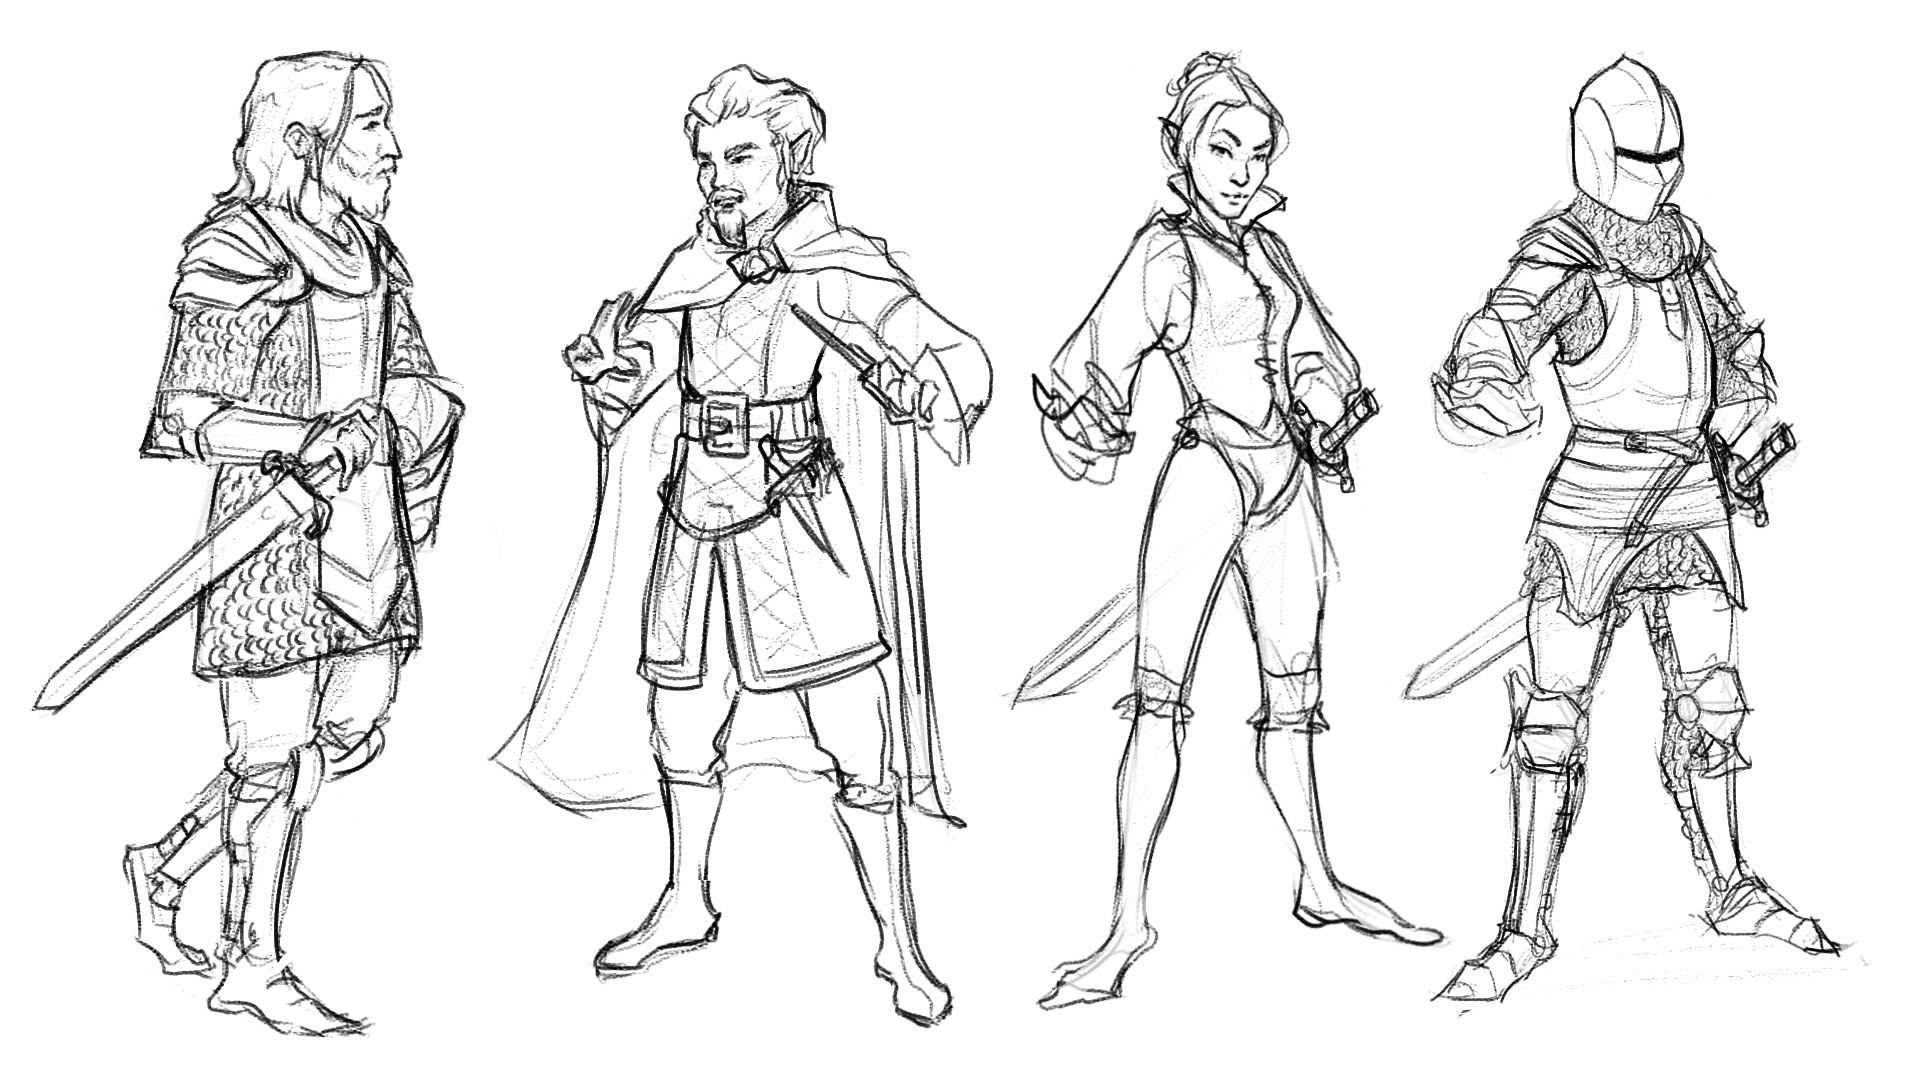 Character sketches by Sophie Morris